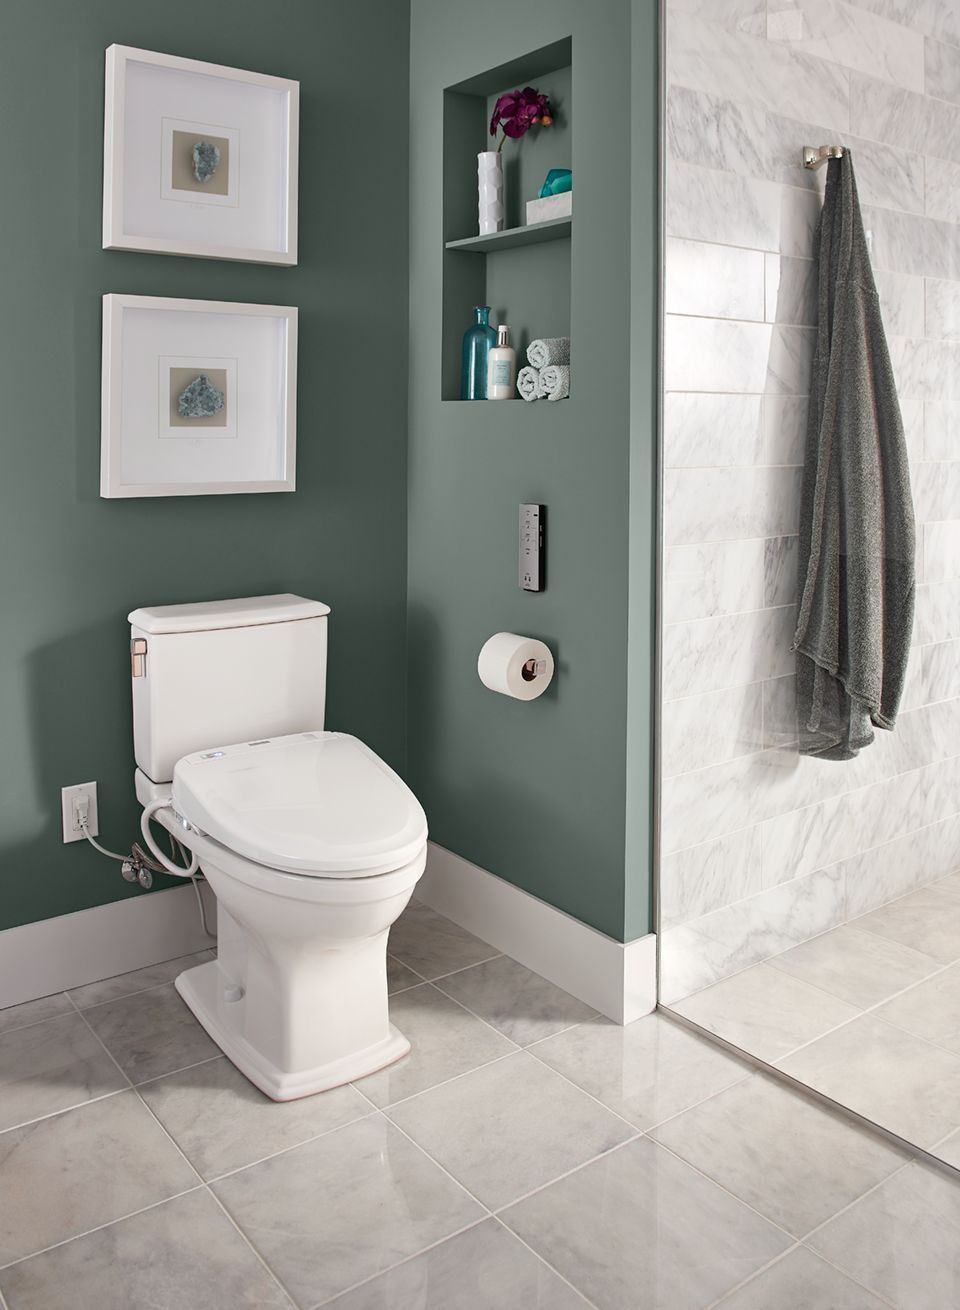 Bathroom Ideas How Much Does It Cost To Remodel A Small Bathroom Smallbathroomideas Bathroomdesignideas Bidet Toilet Seat Toto Toilet Washlet